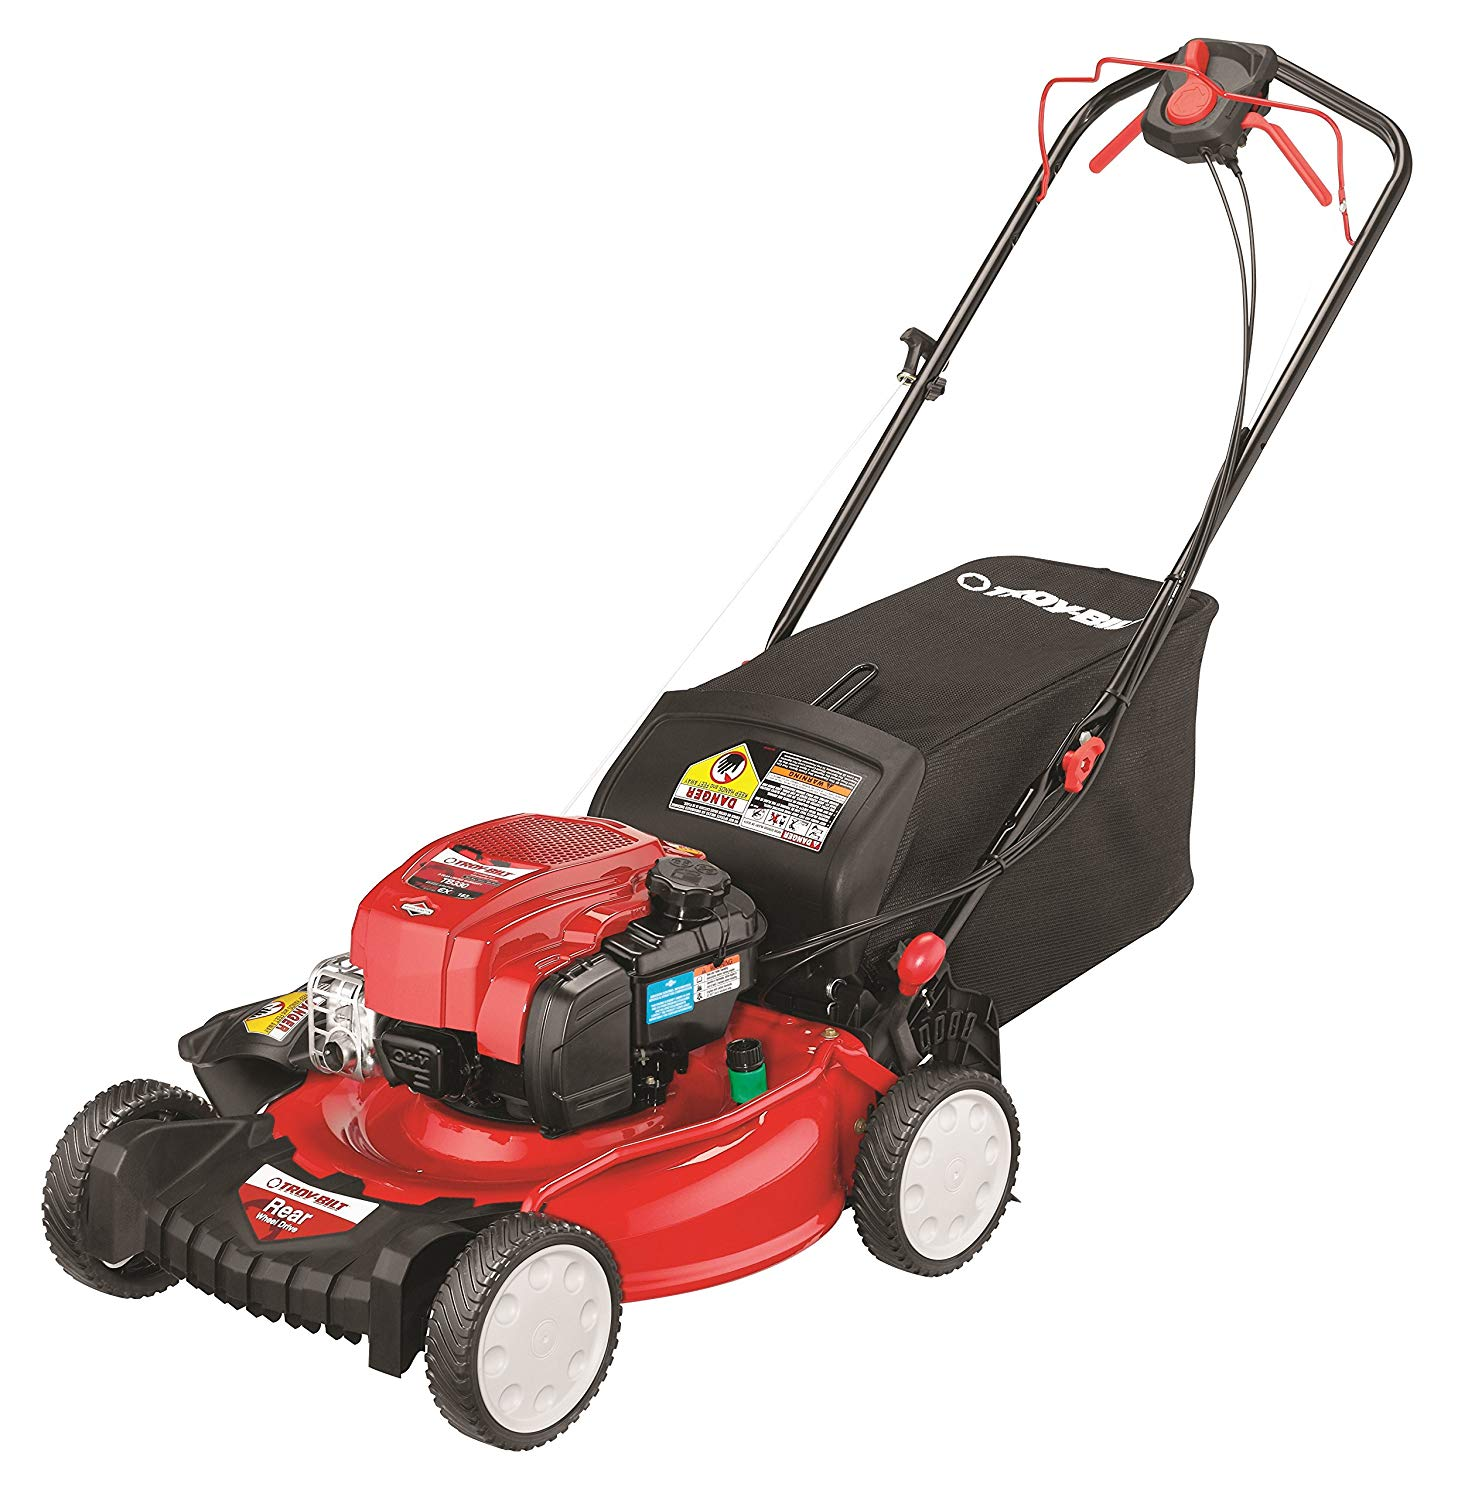 Troy-Bilt RWD Self Propelled Lawn Mower